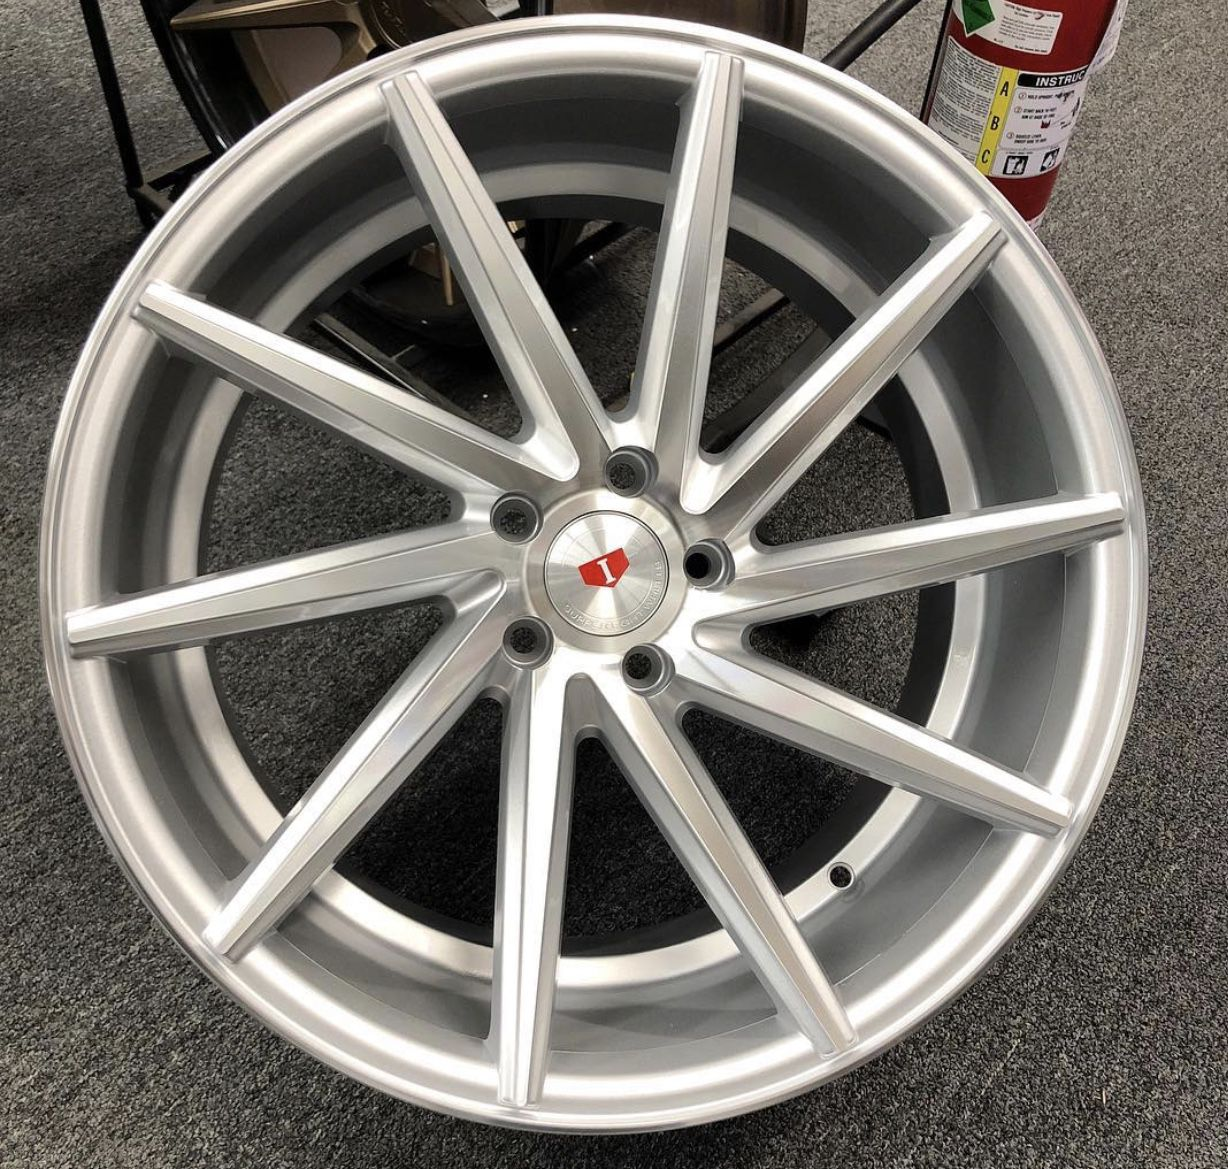 20 inch Rim 5x100 Toyota Corolla! (Only 50 down payment / no credit needed )